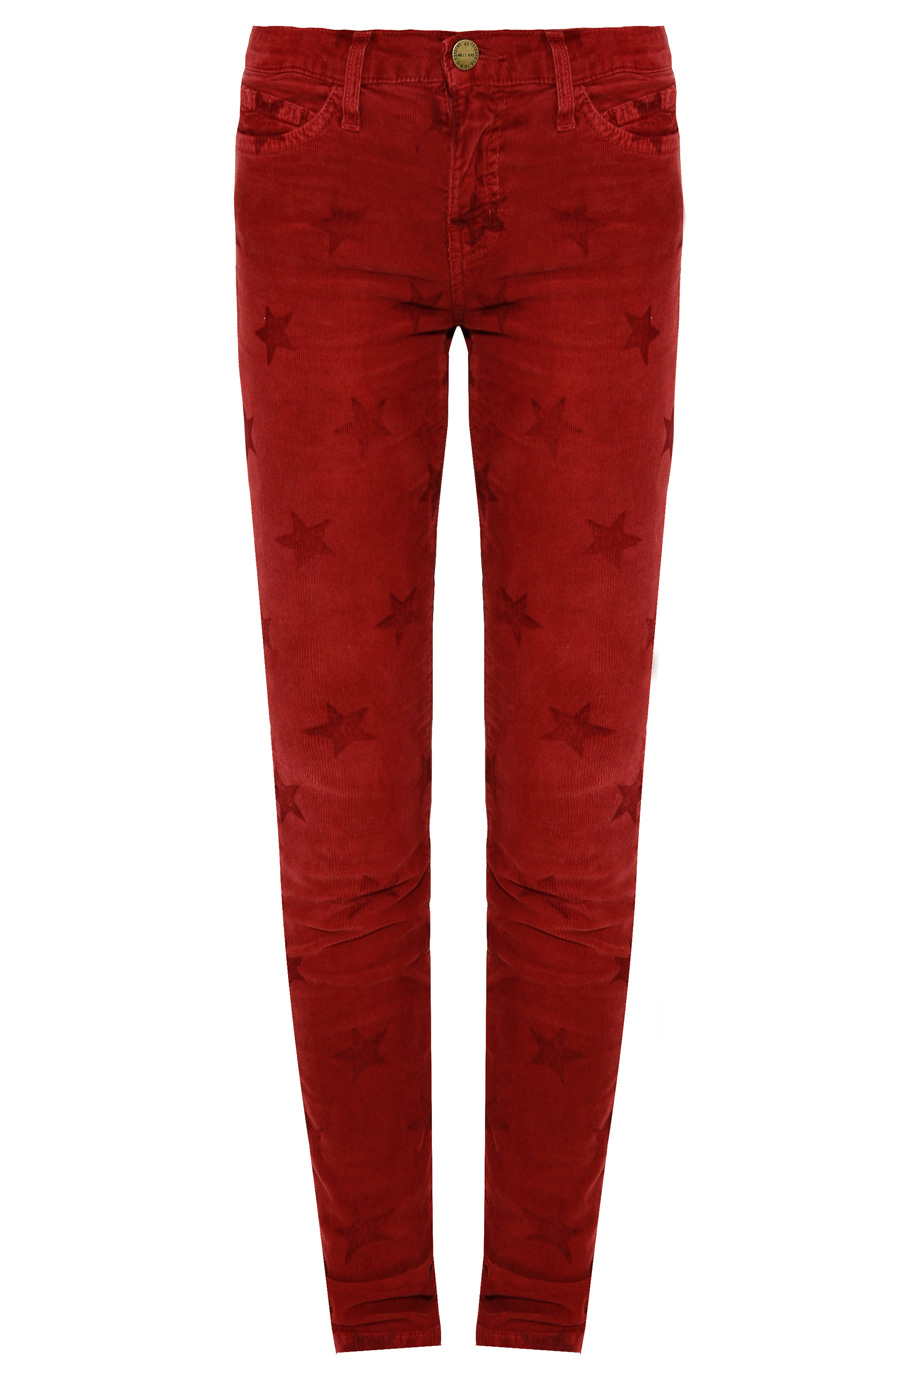 Current/elliott The Ankle Star Print Corduroy Skinny Jeans in Red